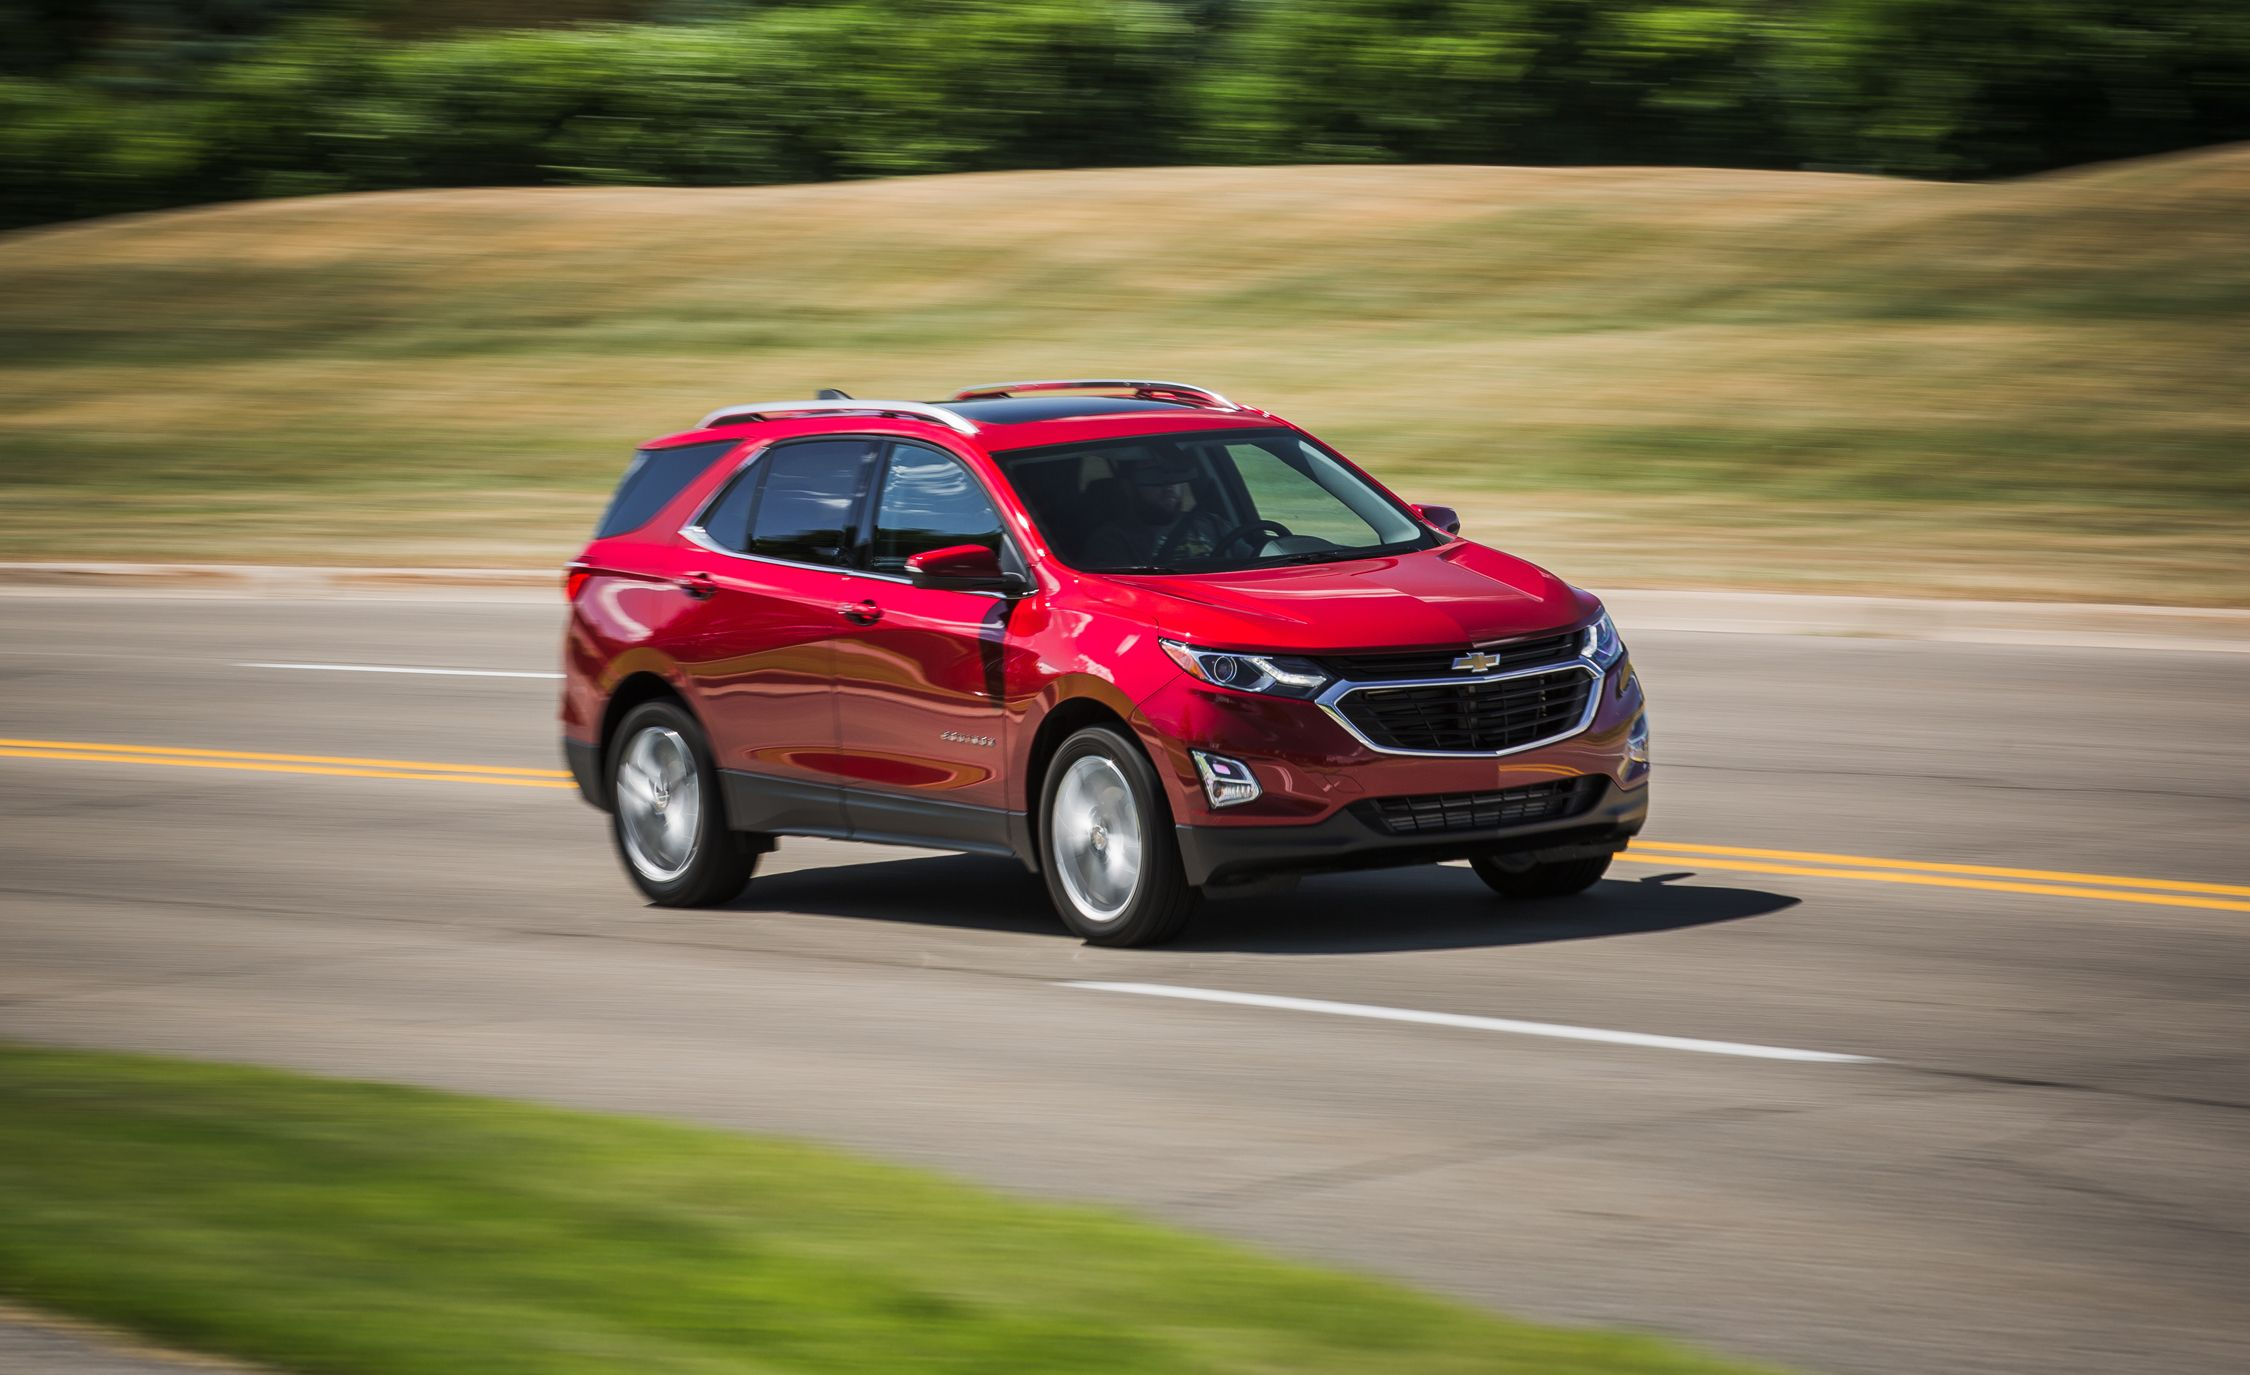 2018 Chevrolet Equinox 2 0T First Drive | Review | Car and Driver